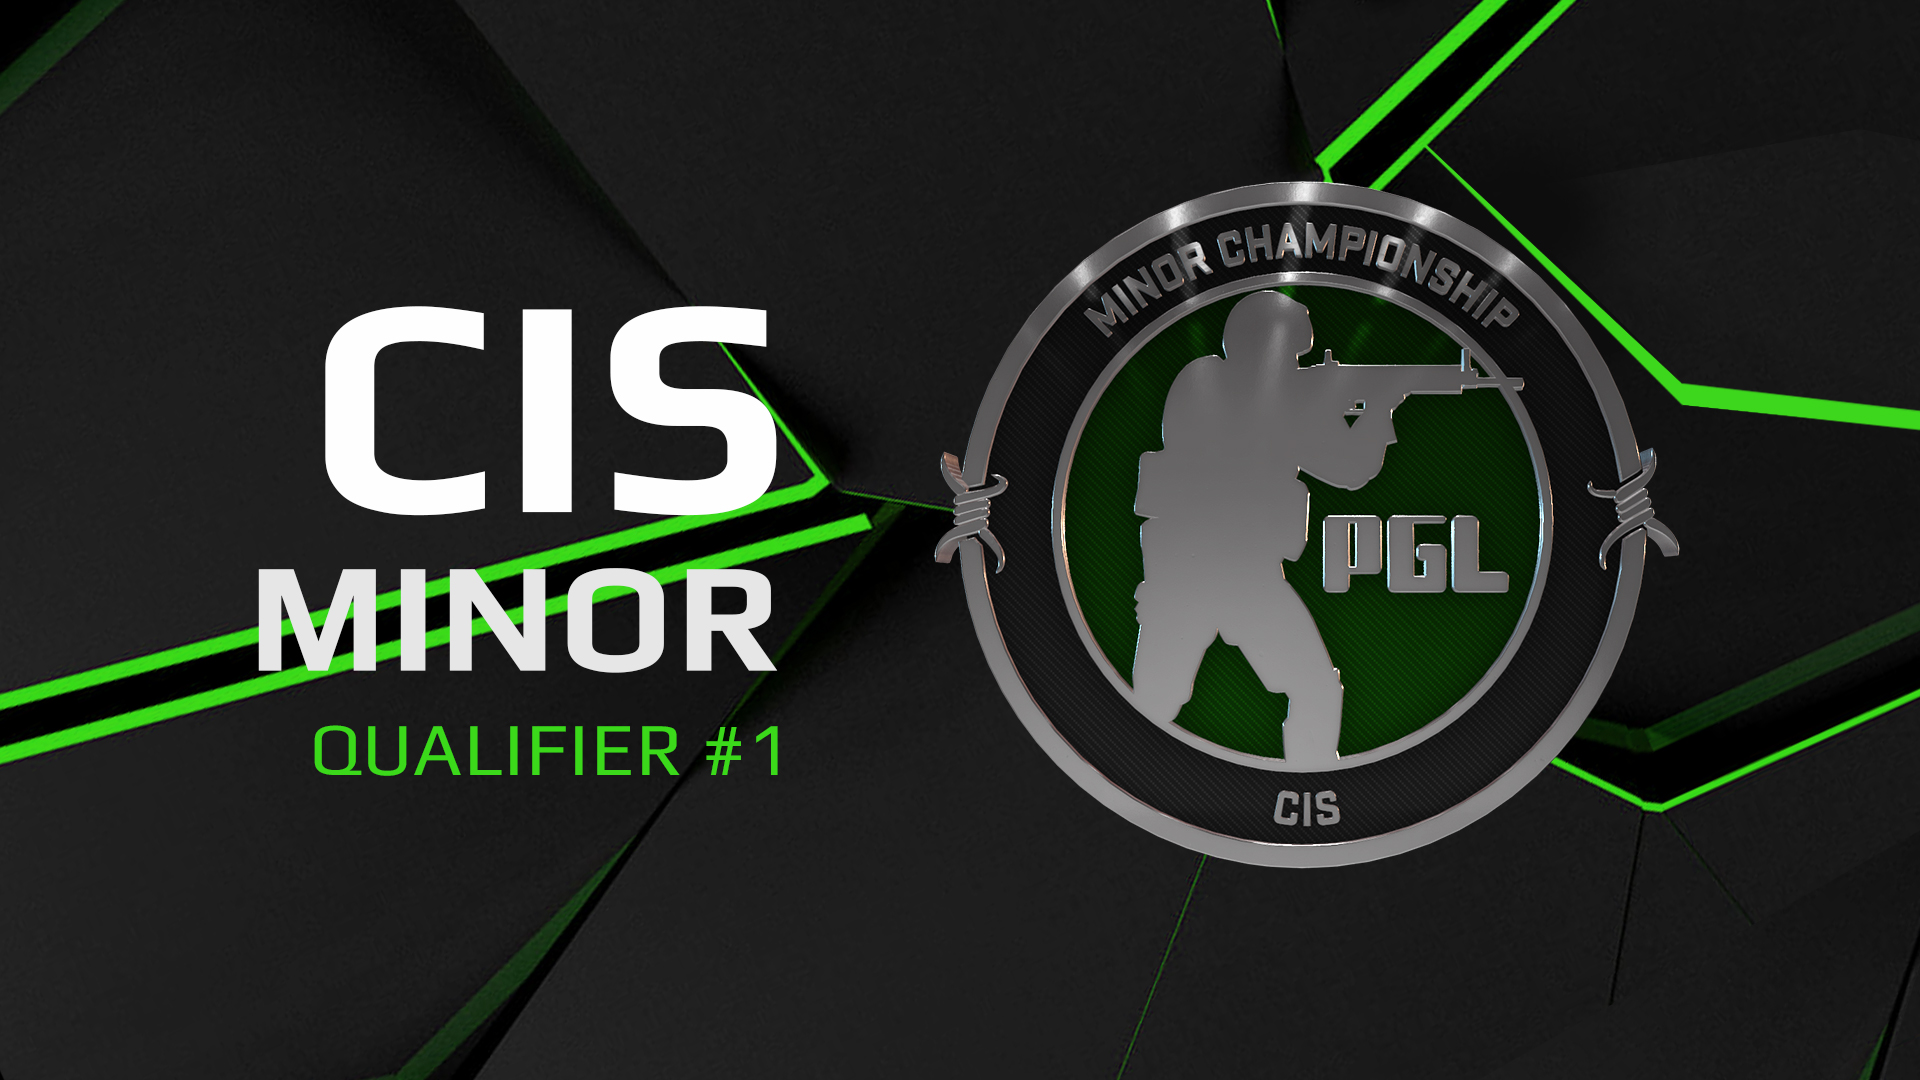 CIS Minor CS:GO